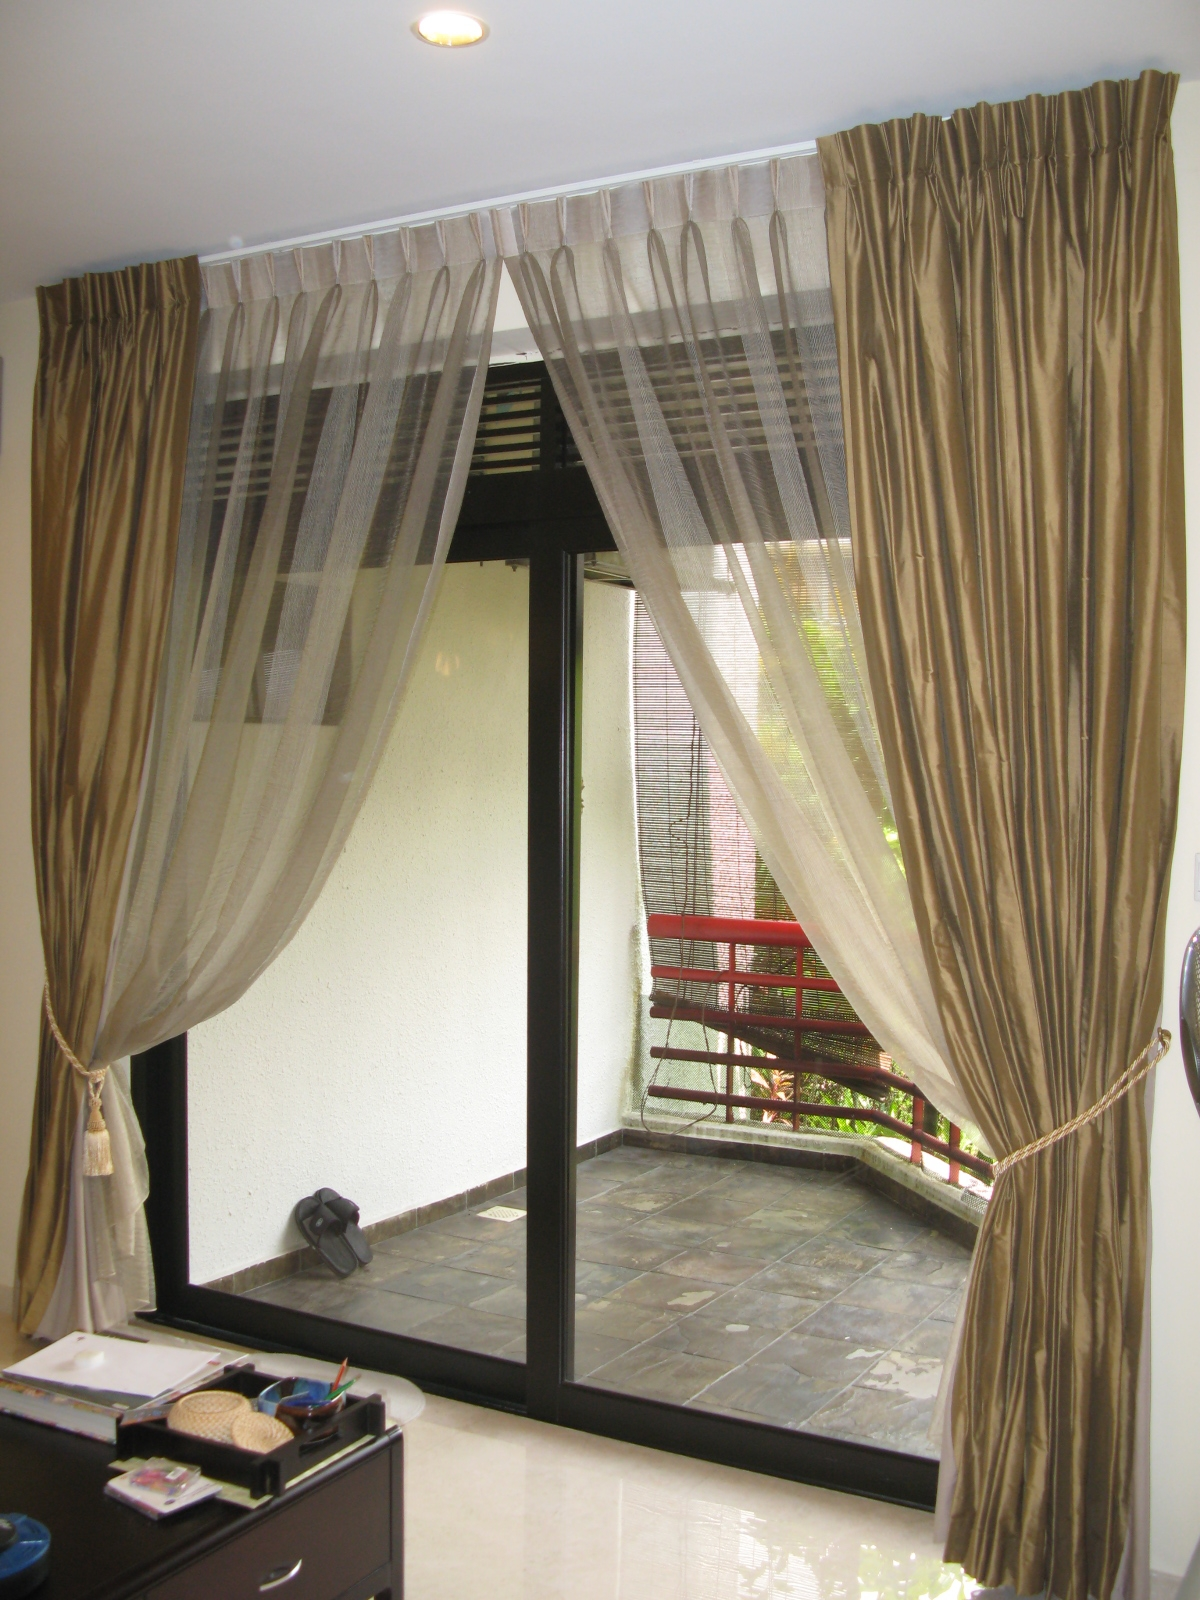 Curtains Valance Curtain Ideas Awesome Window Curtain Styles Pertaining To Valance Curtain Ideas (Image 13 of 25)